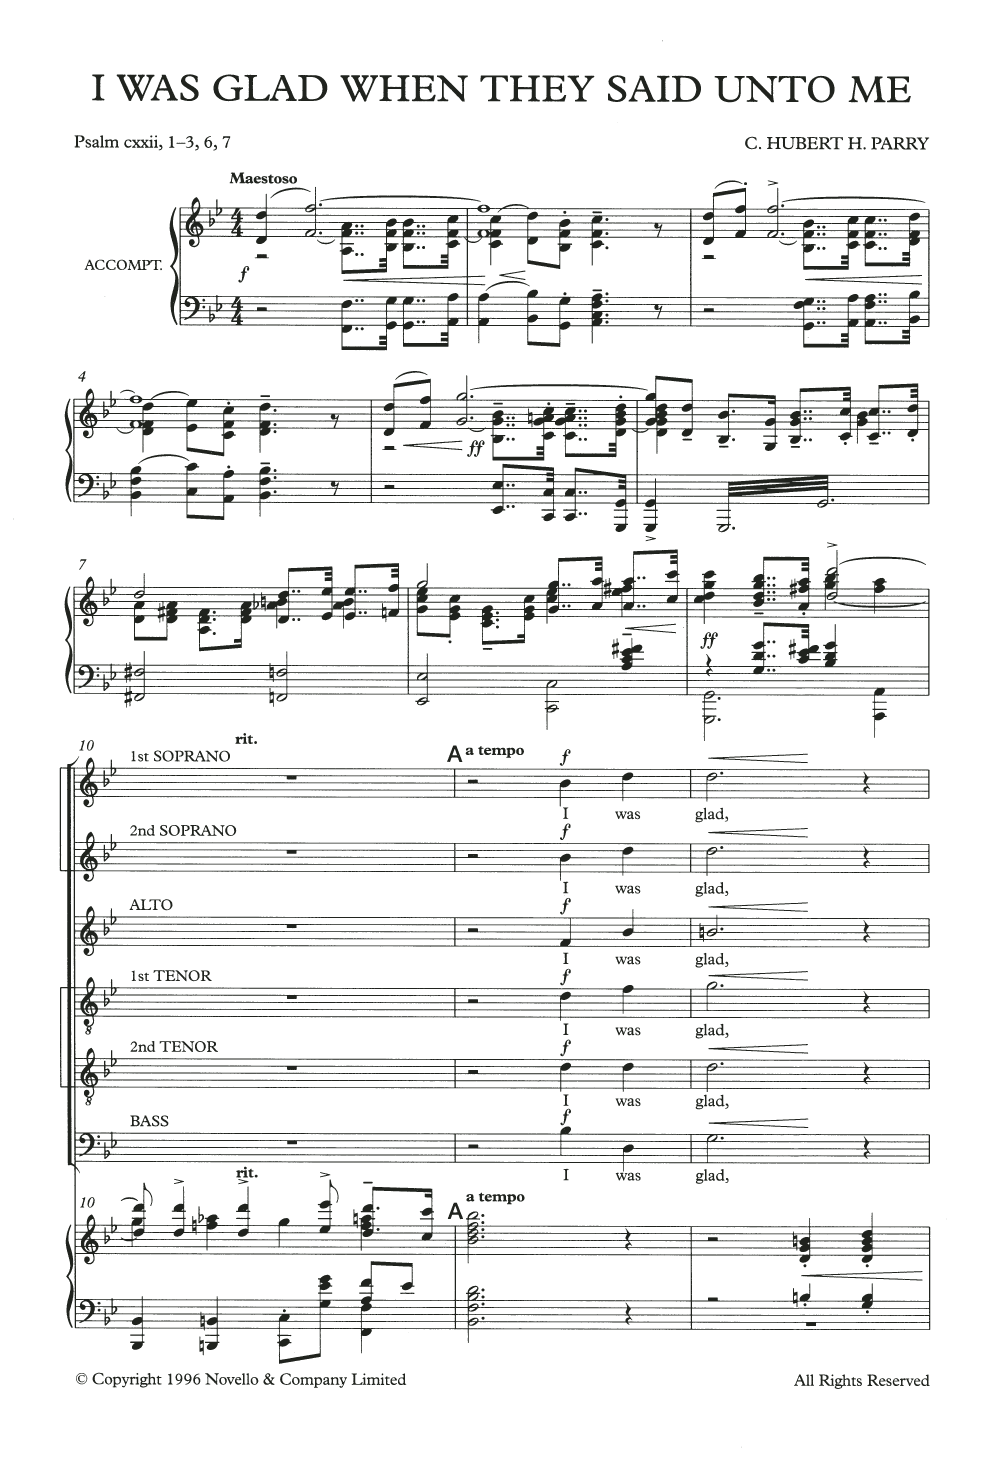 I Was Glad When They Said Unto Me Sheet Music